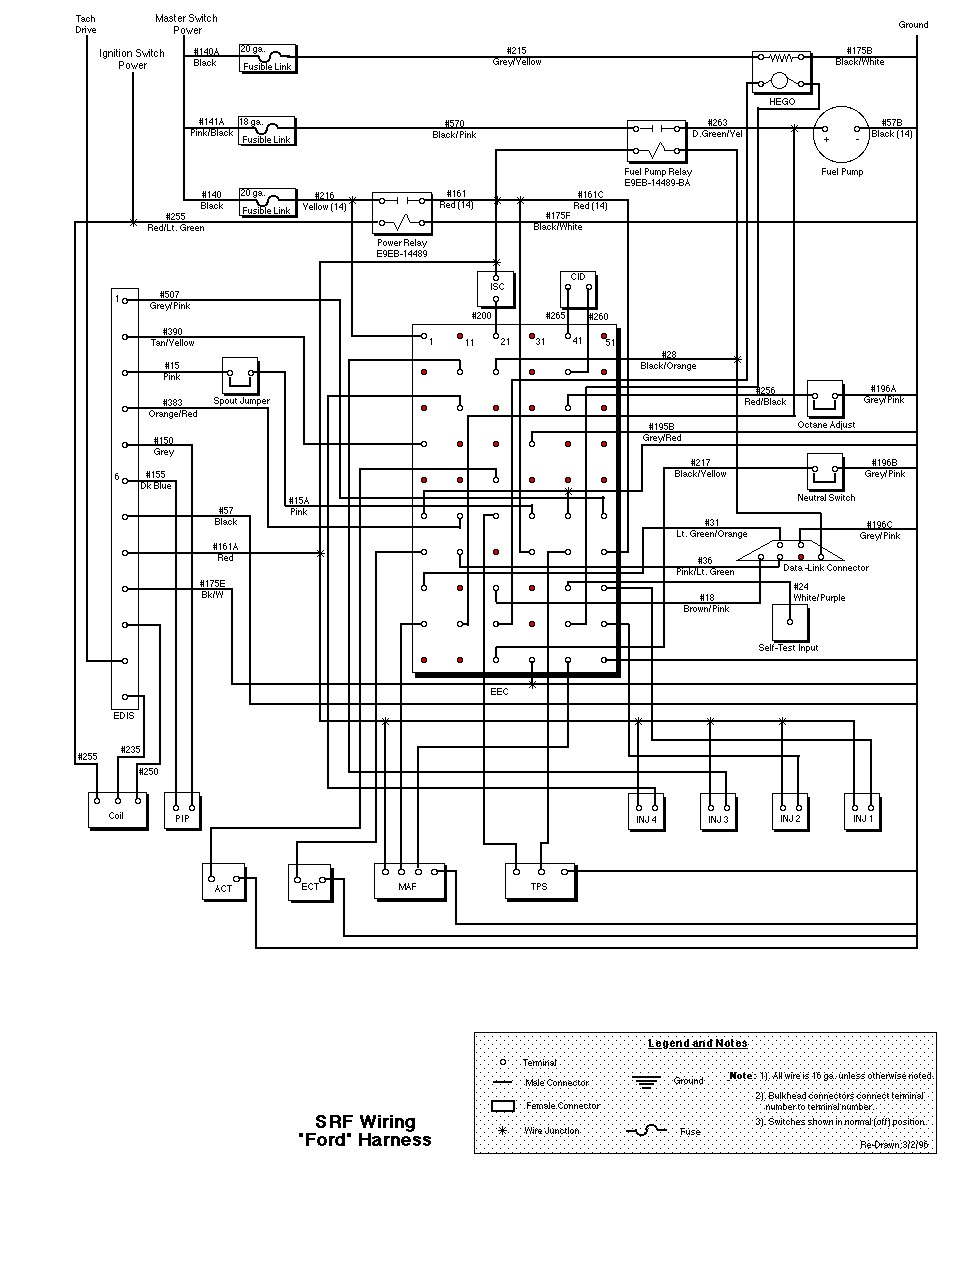 dashboard ford l8000 wiring schematic wiring diagram 1995 ford l8000 wiring free engine image